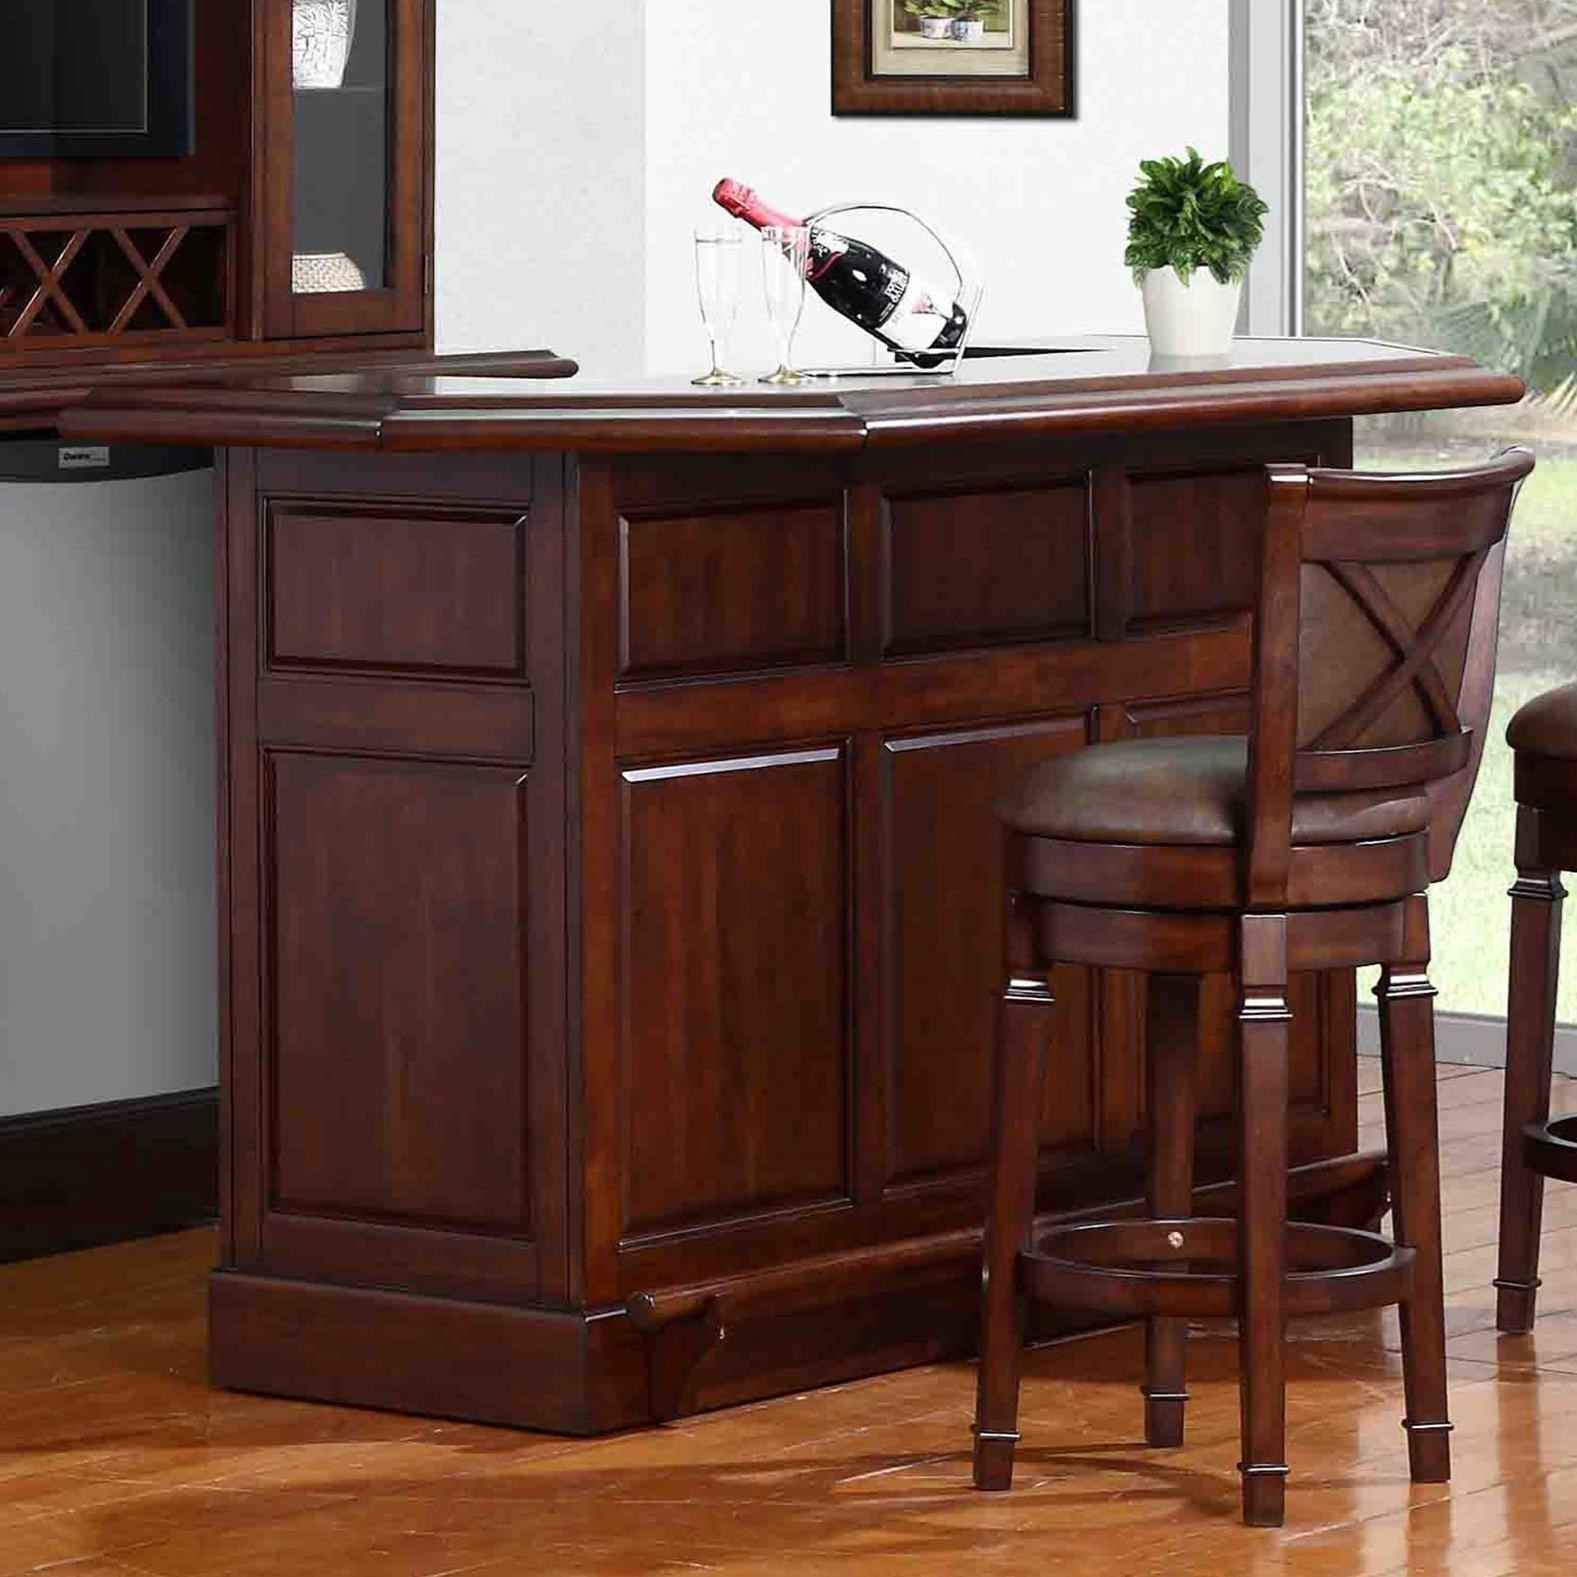 E.C.I. Furniture Belvedere 0411 Bar With Built In Wine Rack